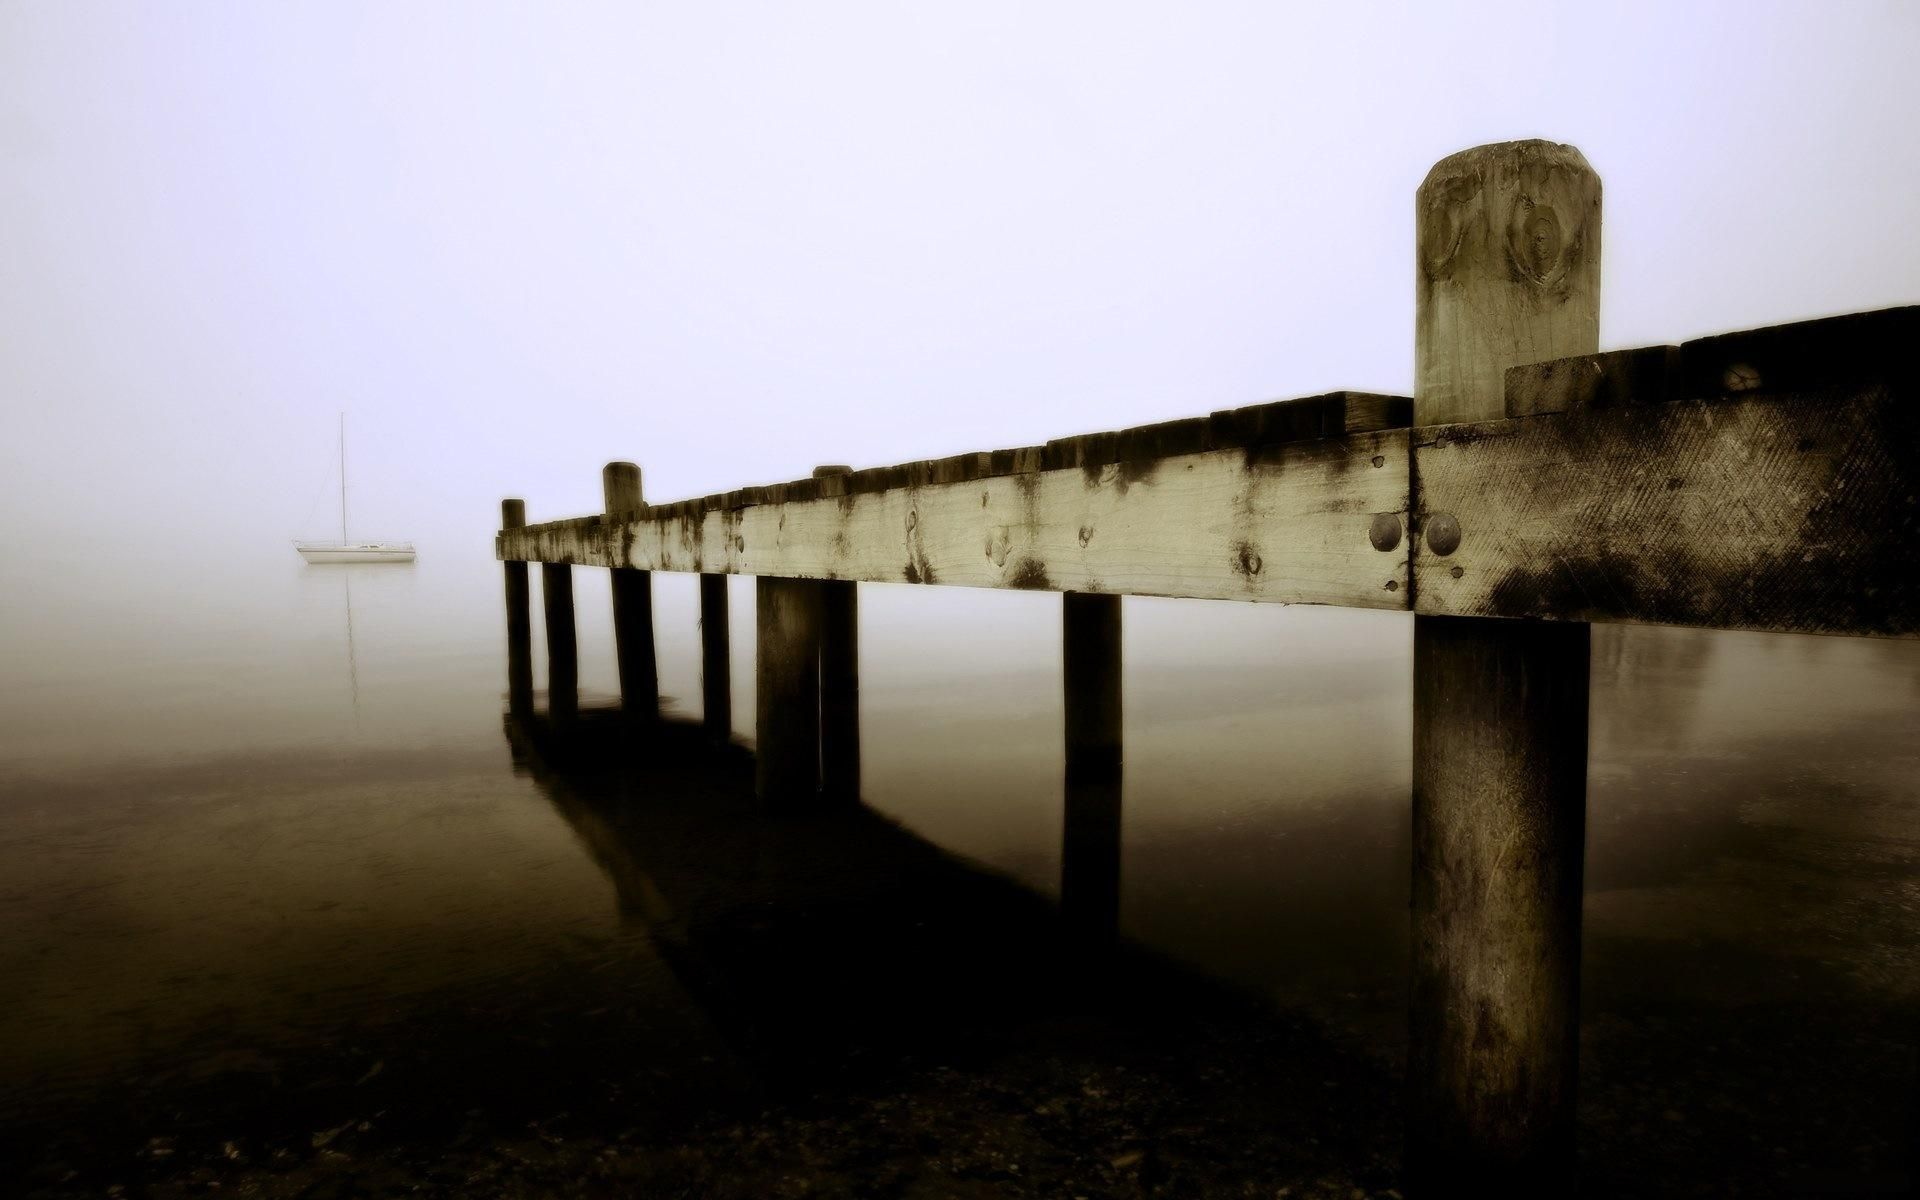 Sea, ship, coast, sand, fog, pier, wallpapers , Pc backgrounds, free photos - HD wallpaper desktop backgrounds